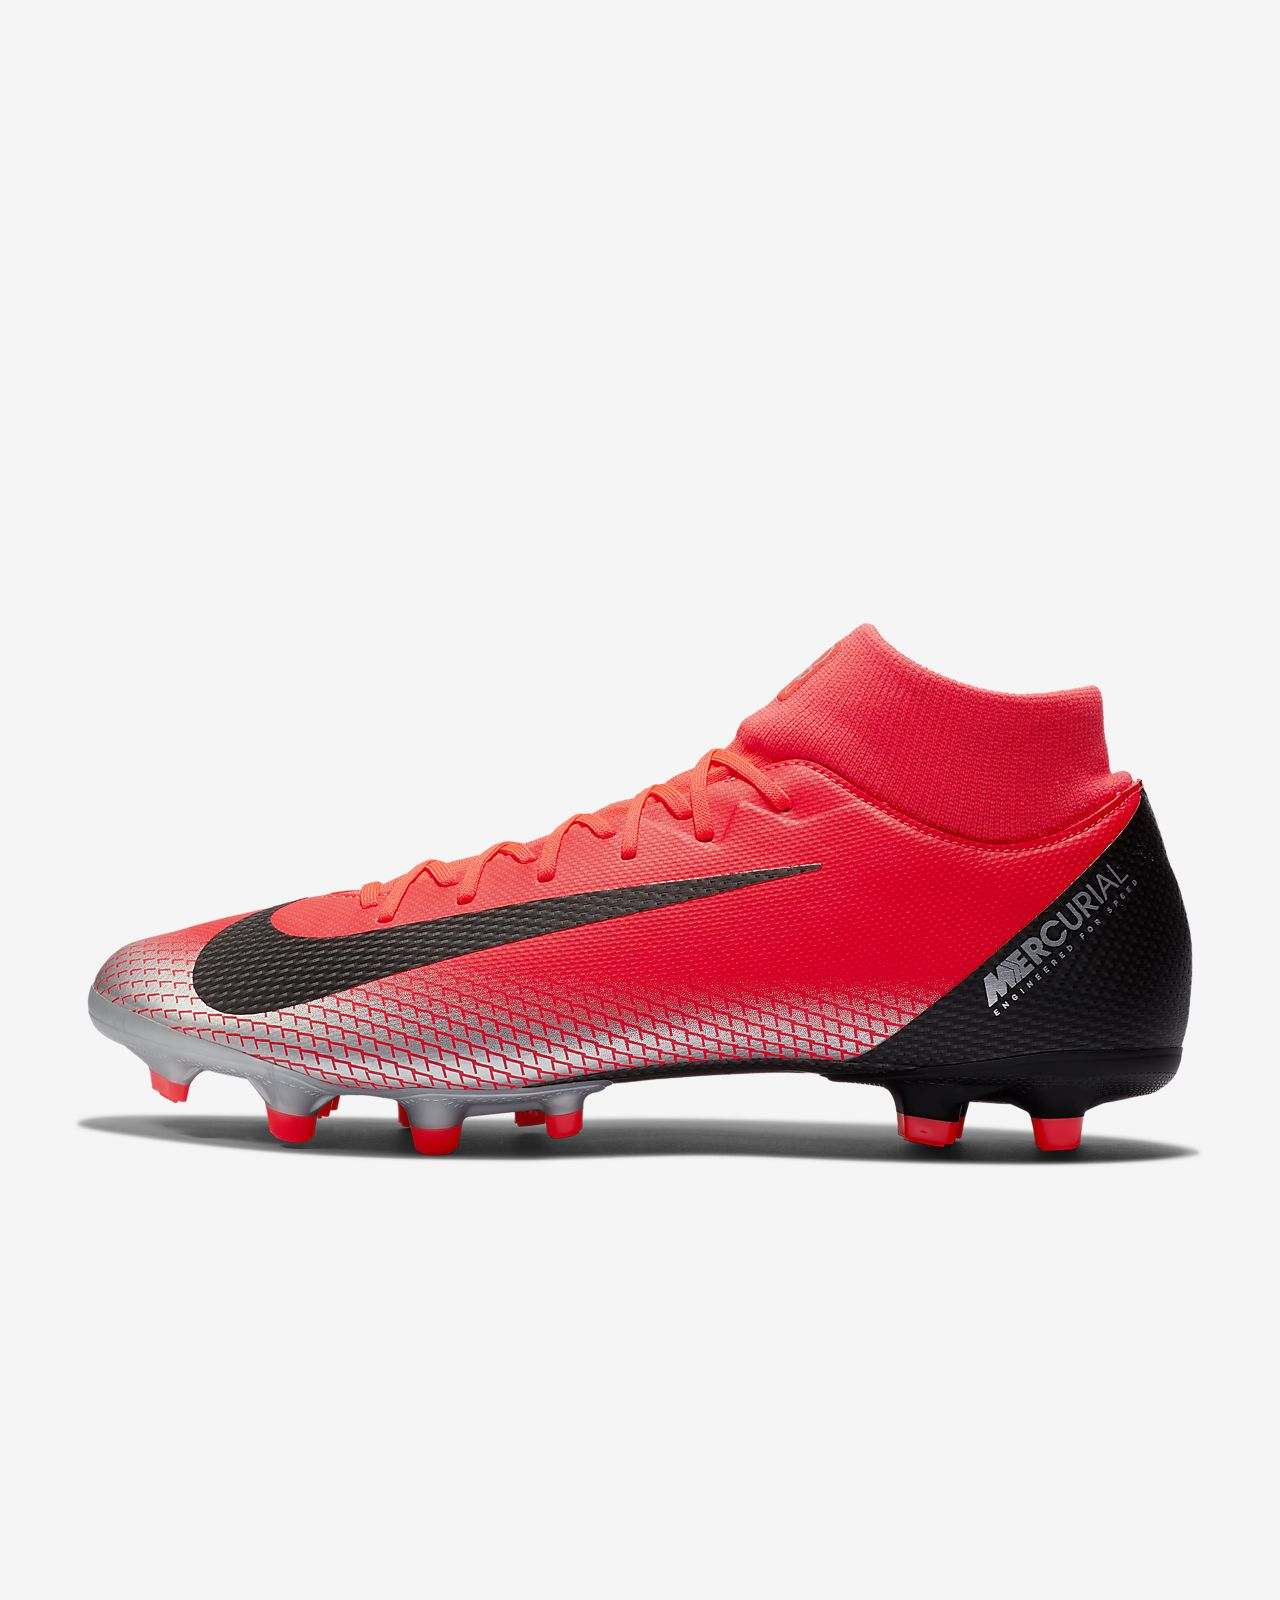 Mercurial Academy Calcio Superfly Nike Multiterreno Scarpa Cr7 6 Da IOxv00q4